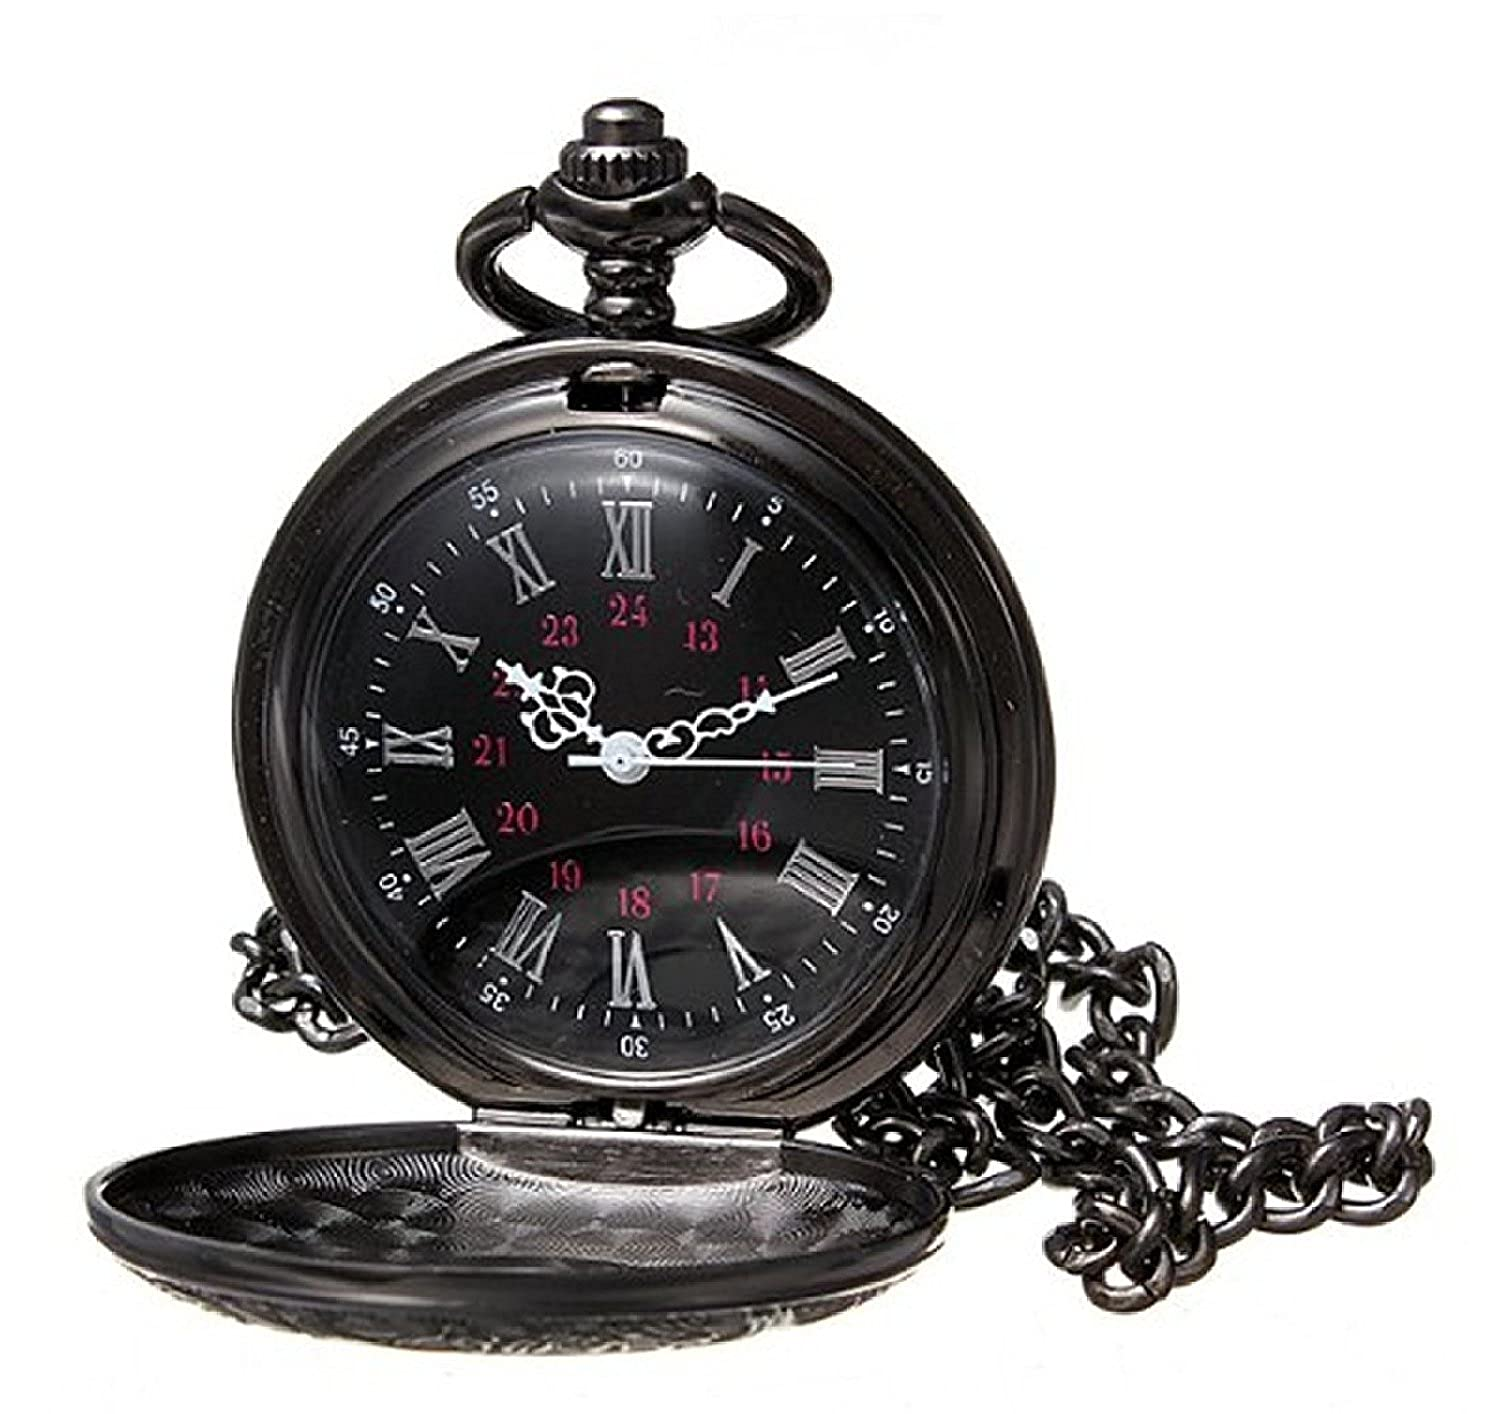 9bf9ad57b Amazon.com: MJSCPHBJK Black Pocket Watch Roman Pattern Steampunk Retro  Vintage Quartz Roman Numerals Pocket Watch for Xmas Fathers Day Gift:  Watches